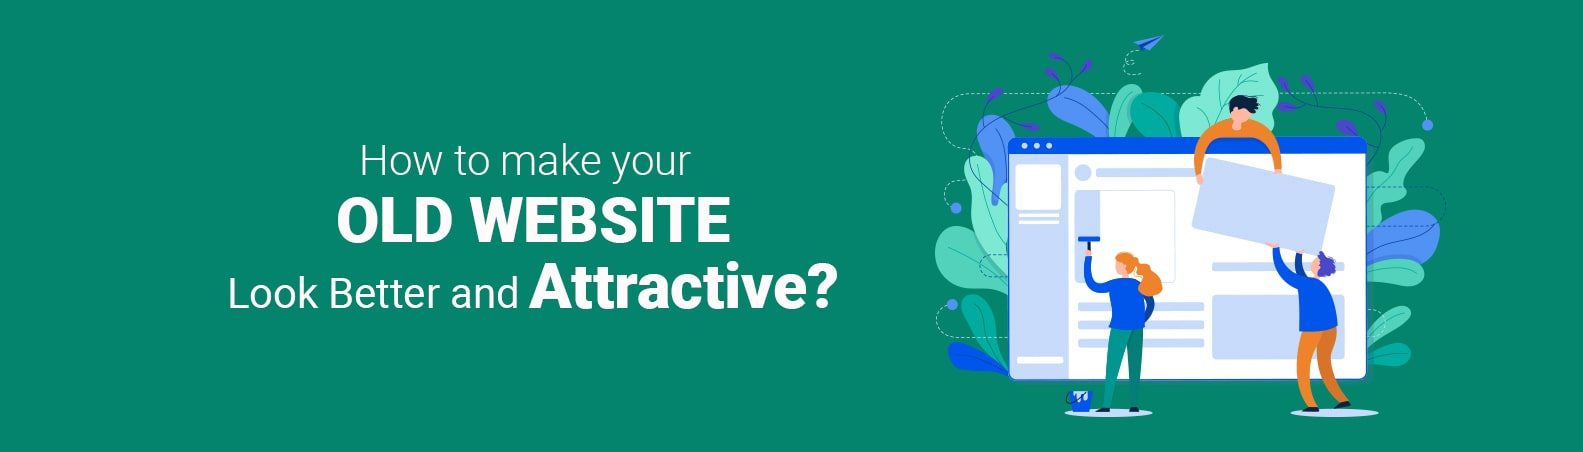 Top 10 Methods to Make a Website Attractive | Best Web Design